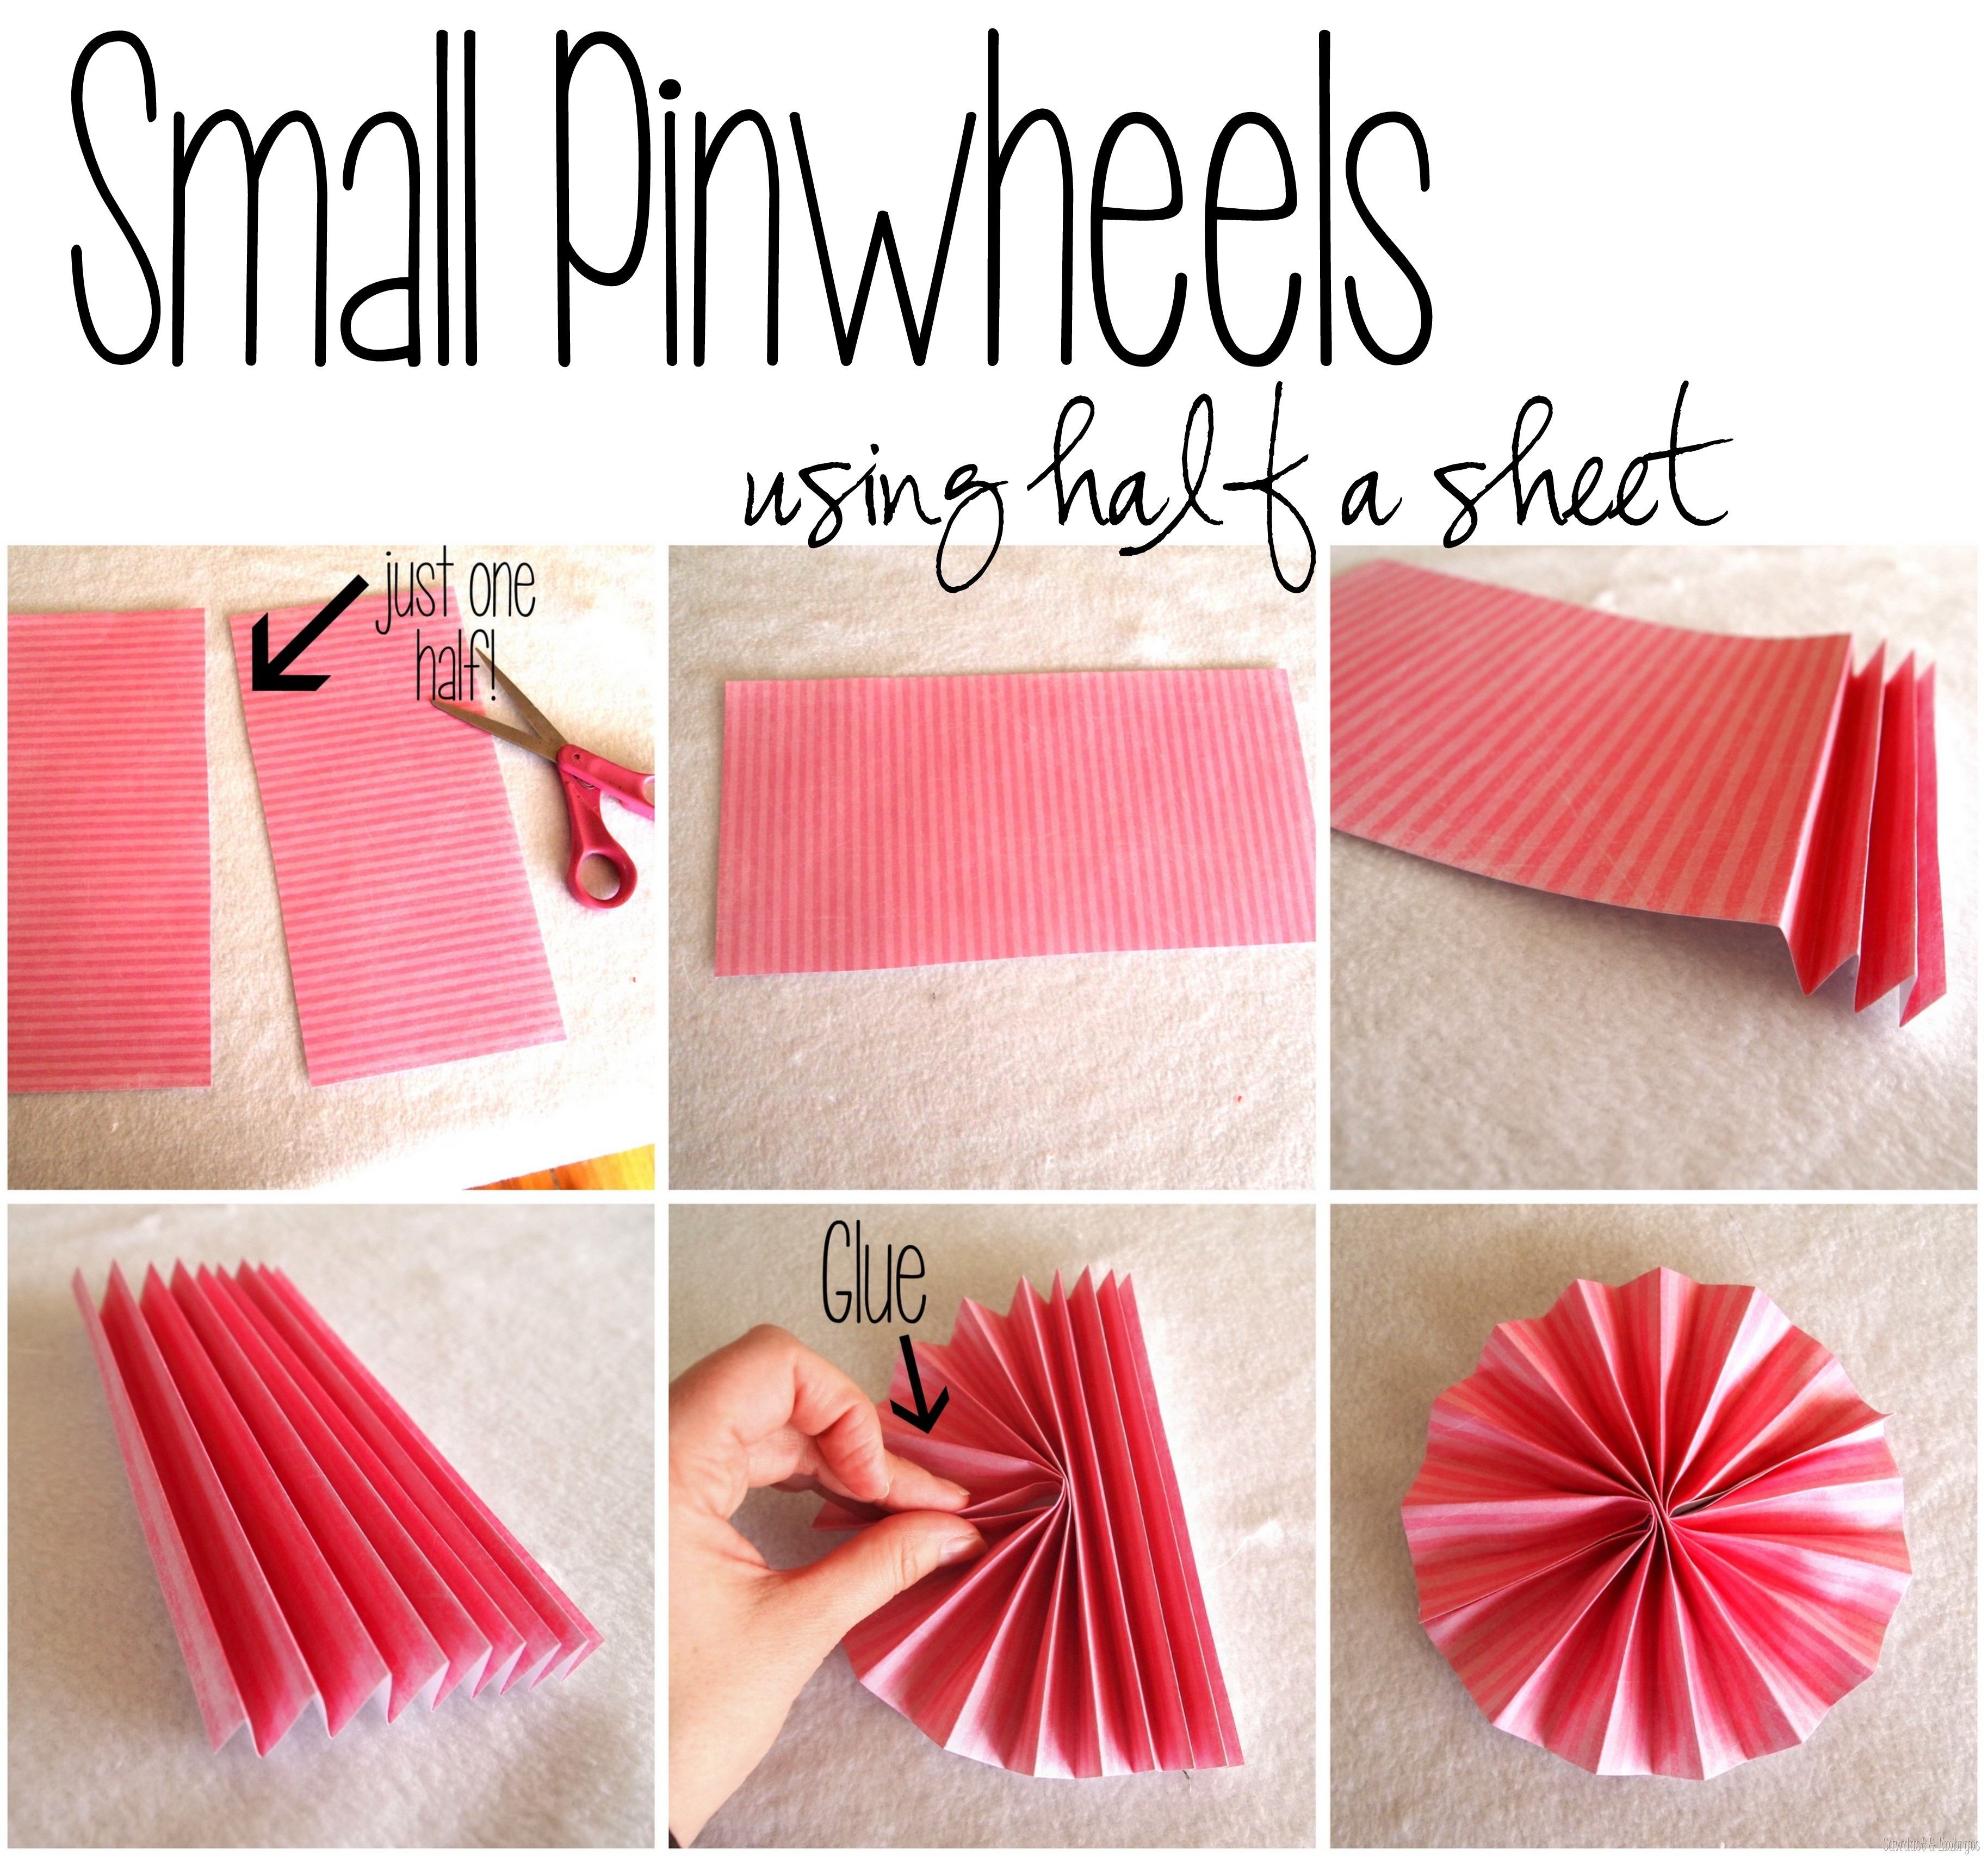 Make different size pinwheels for a pinwheel collage using scrapbooking paper sawdust and embryos